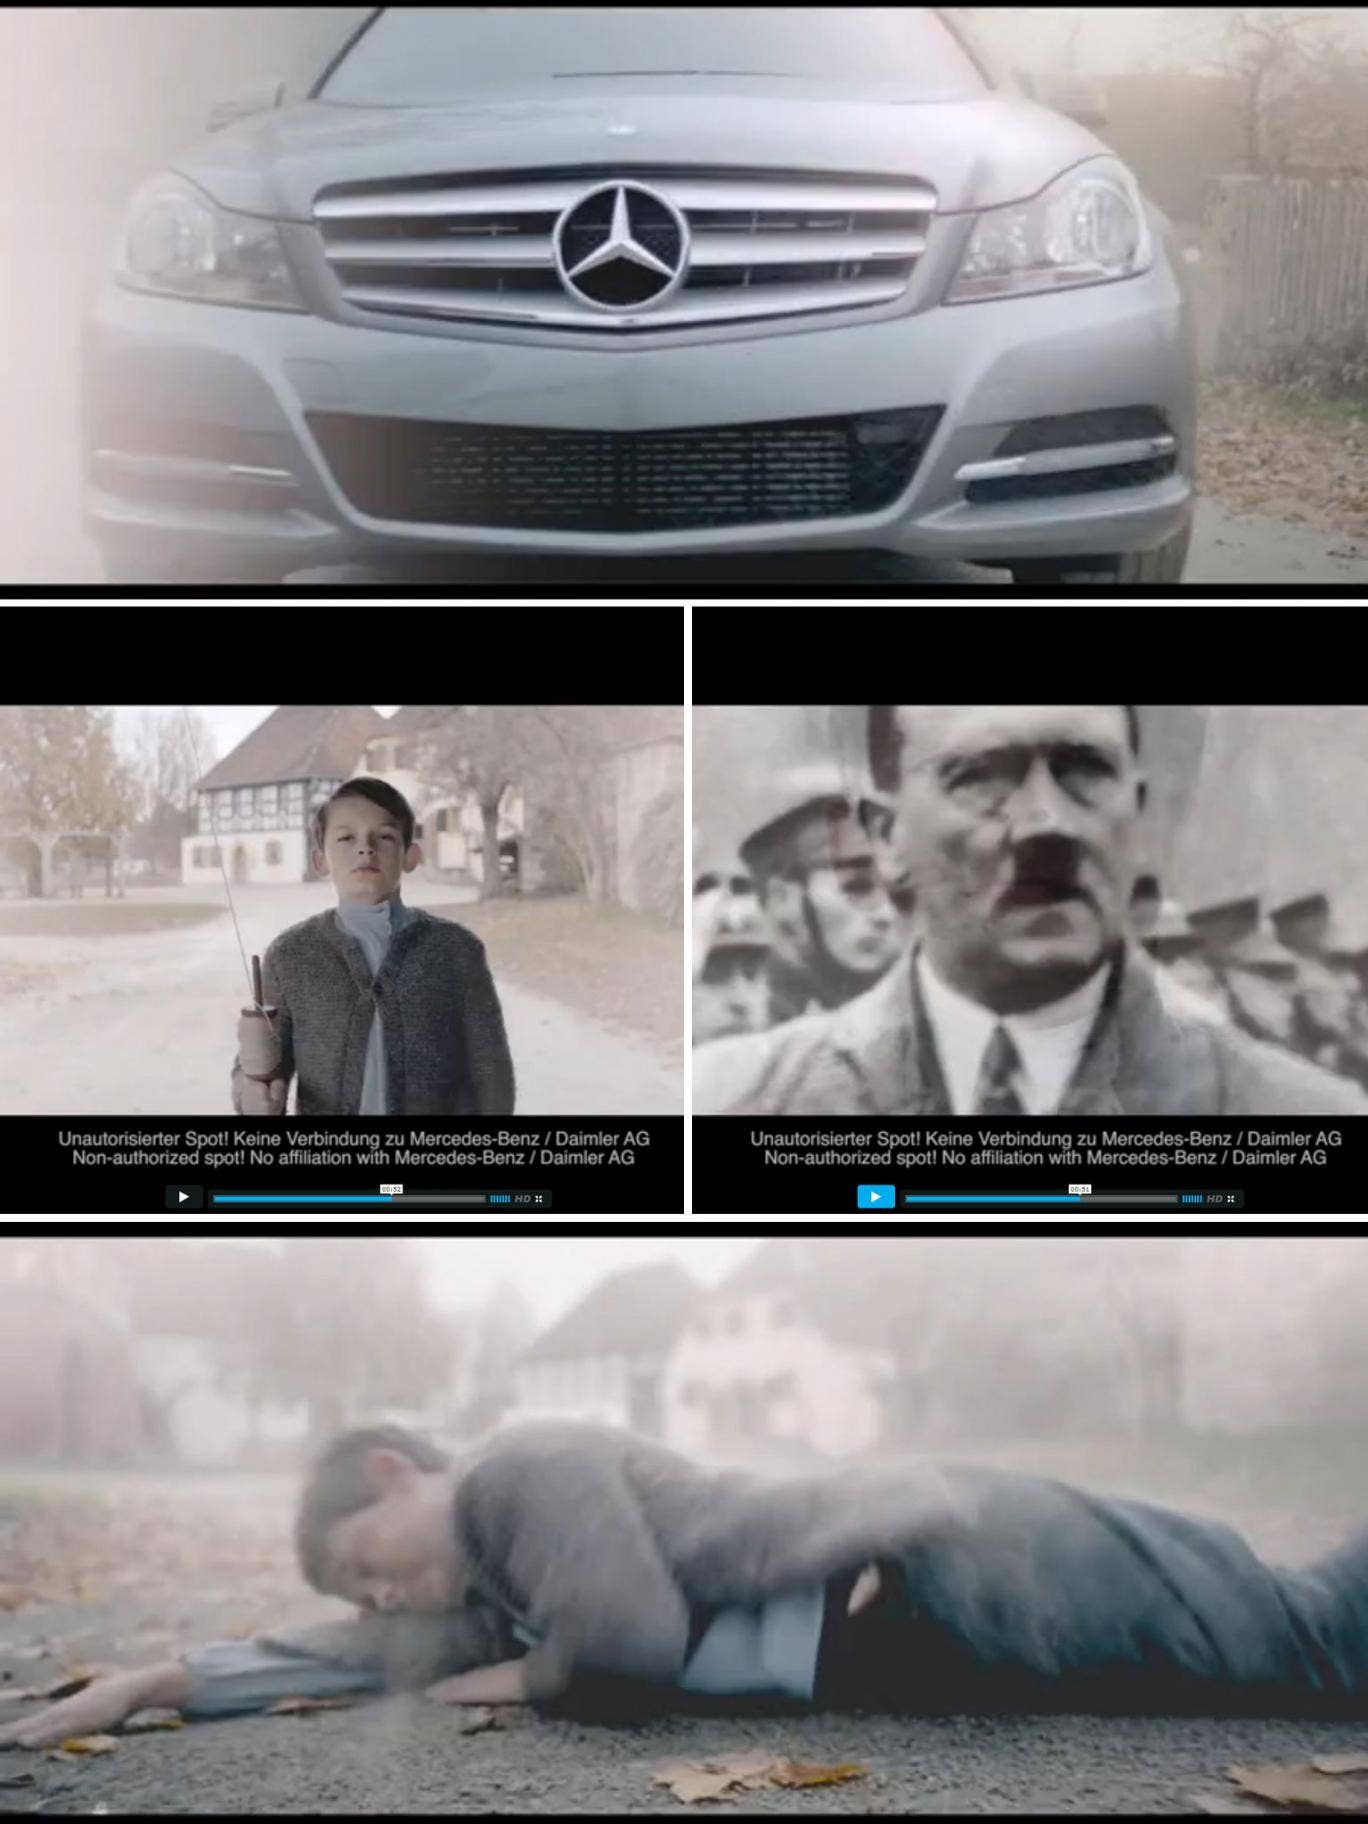 The spoof advert features a Mercedes C-class car driving through an Austrian village in 1890 and hitting a boy who is seemingly a young Hitler